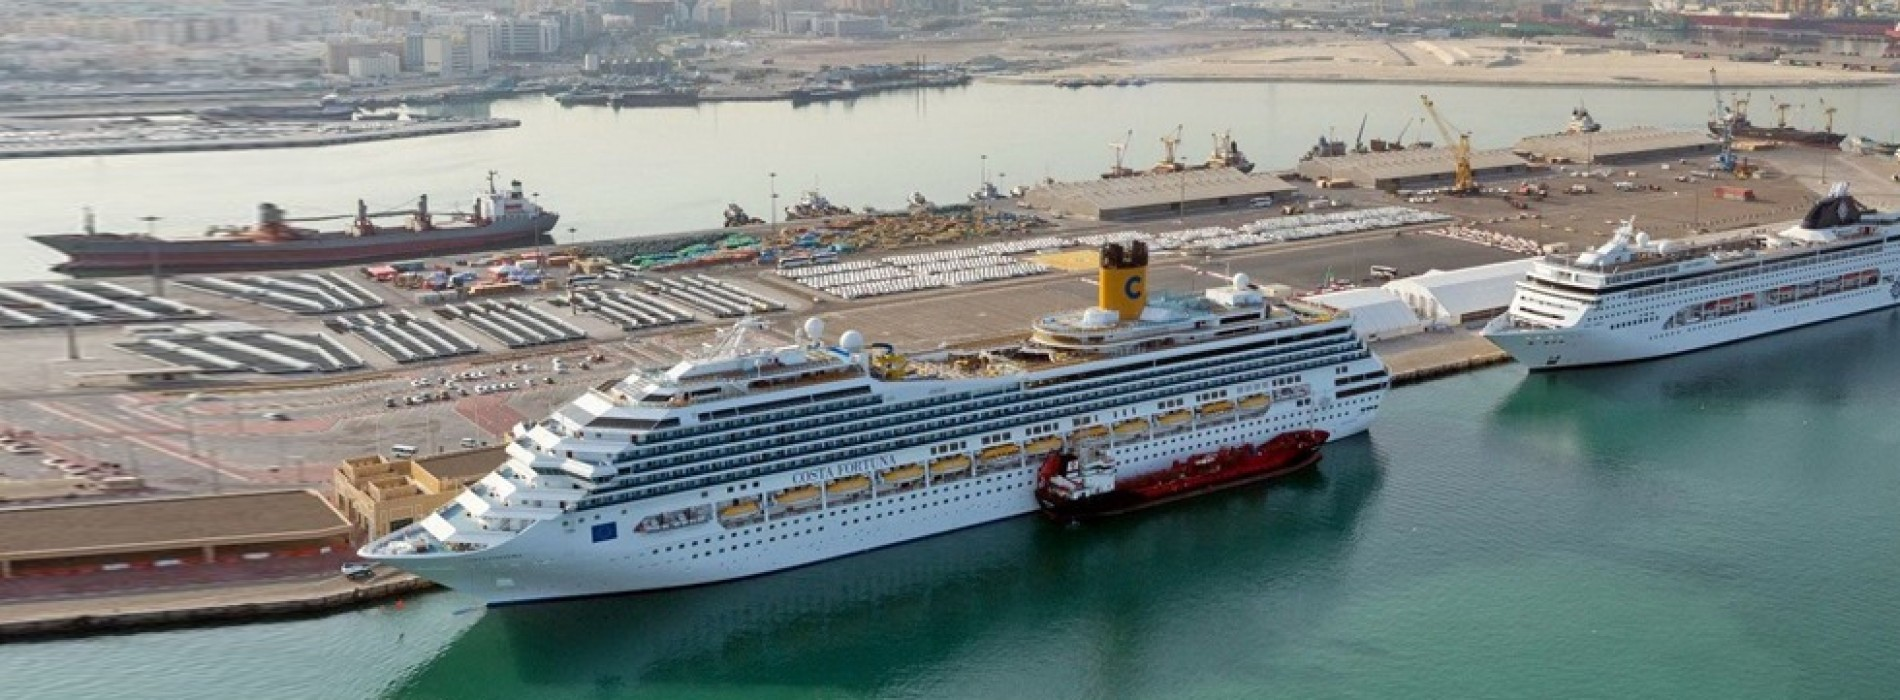 Dubai bets big on cruise tourism to attract 20 m visitors by 2020